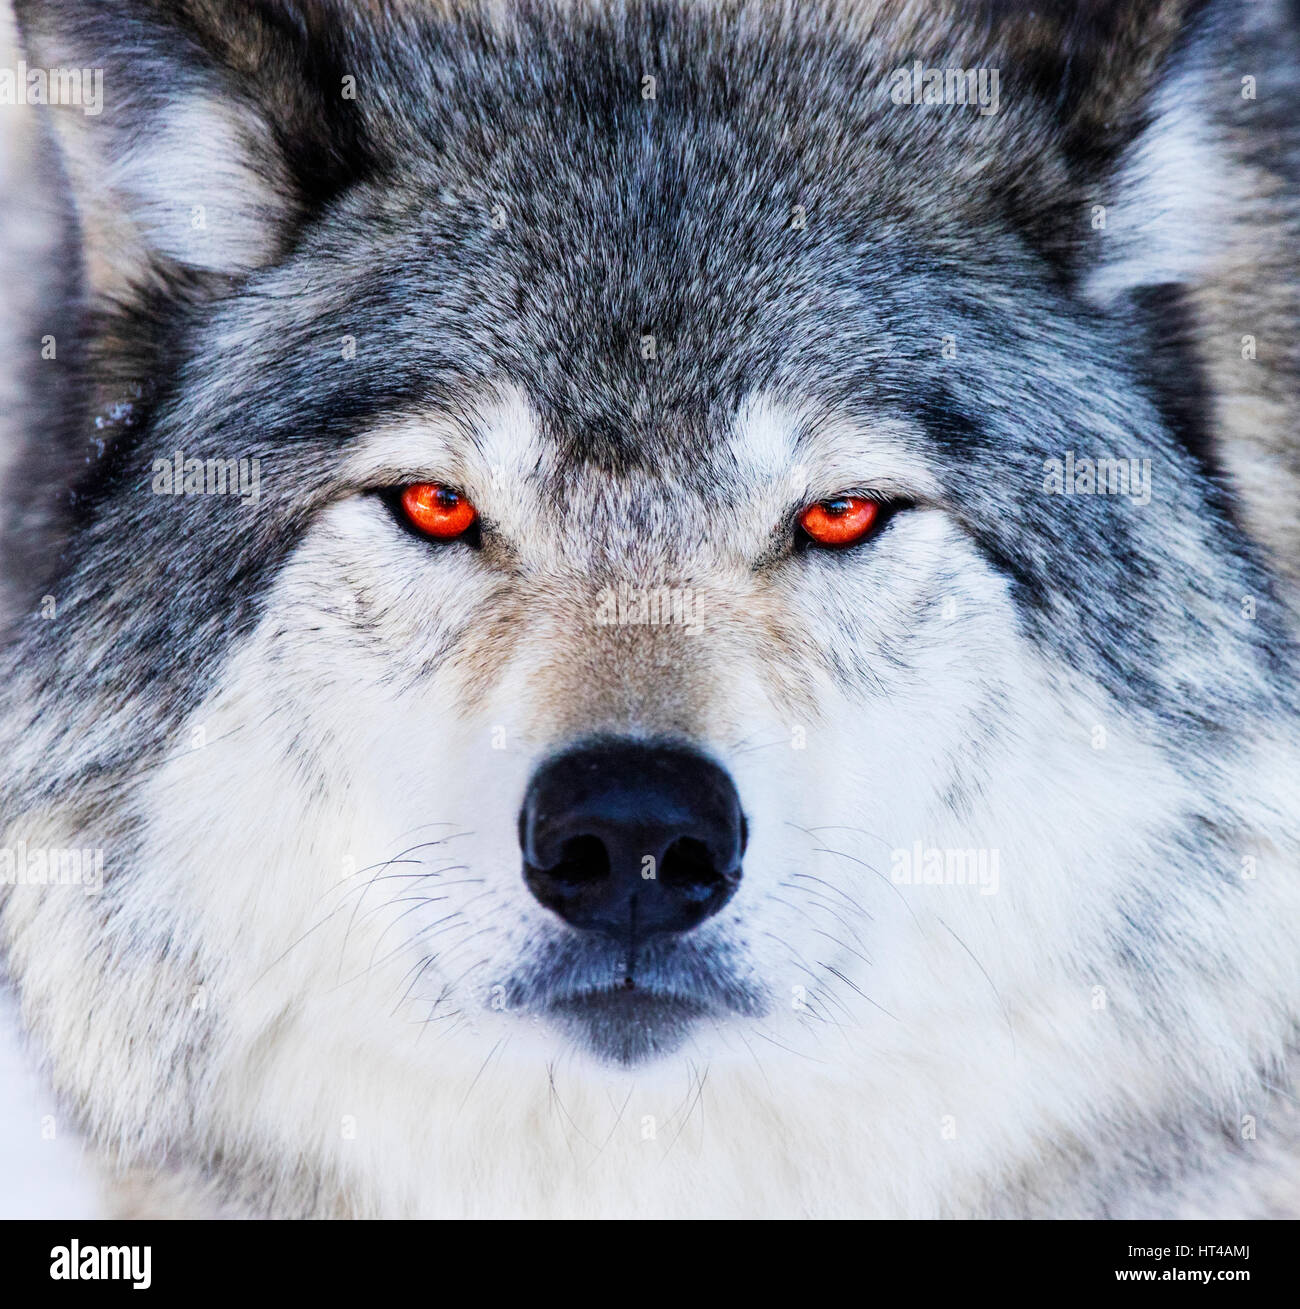 Red Eyes Wolf Portrait Stock Photo 135320546 Alamy